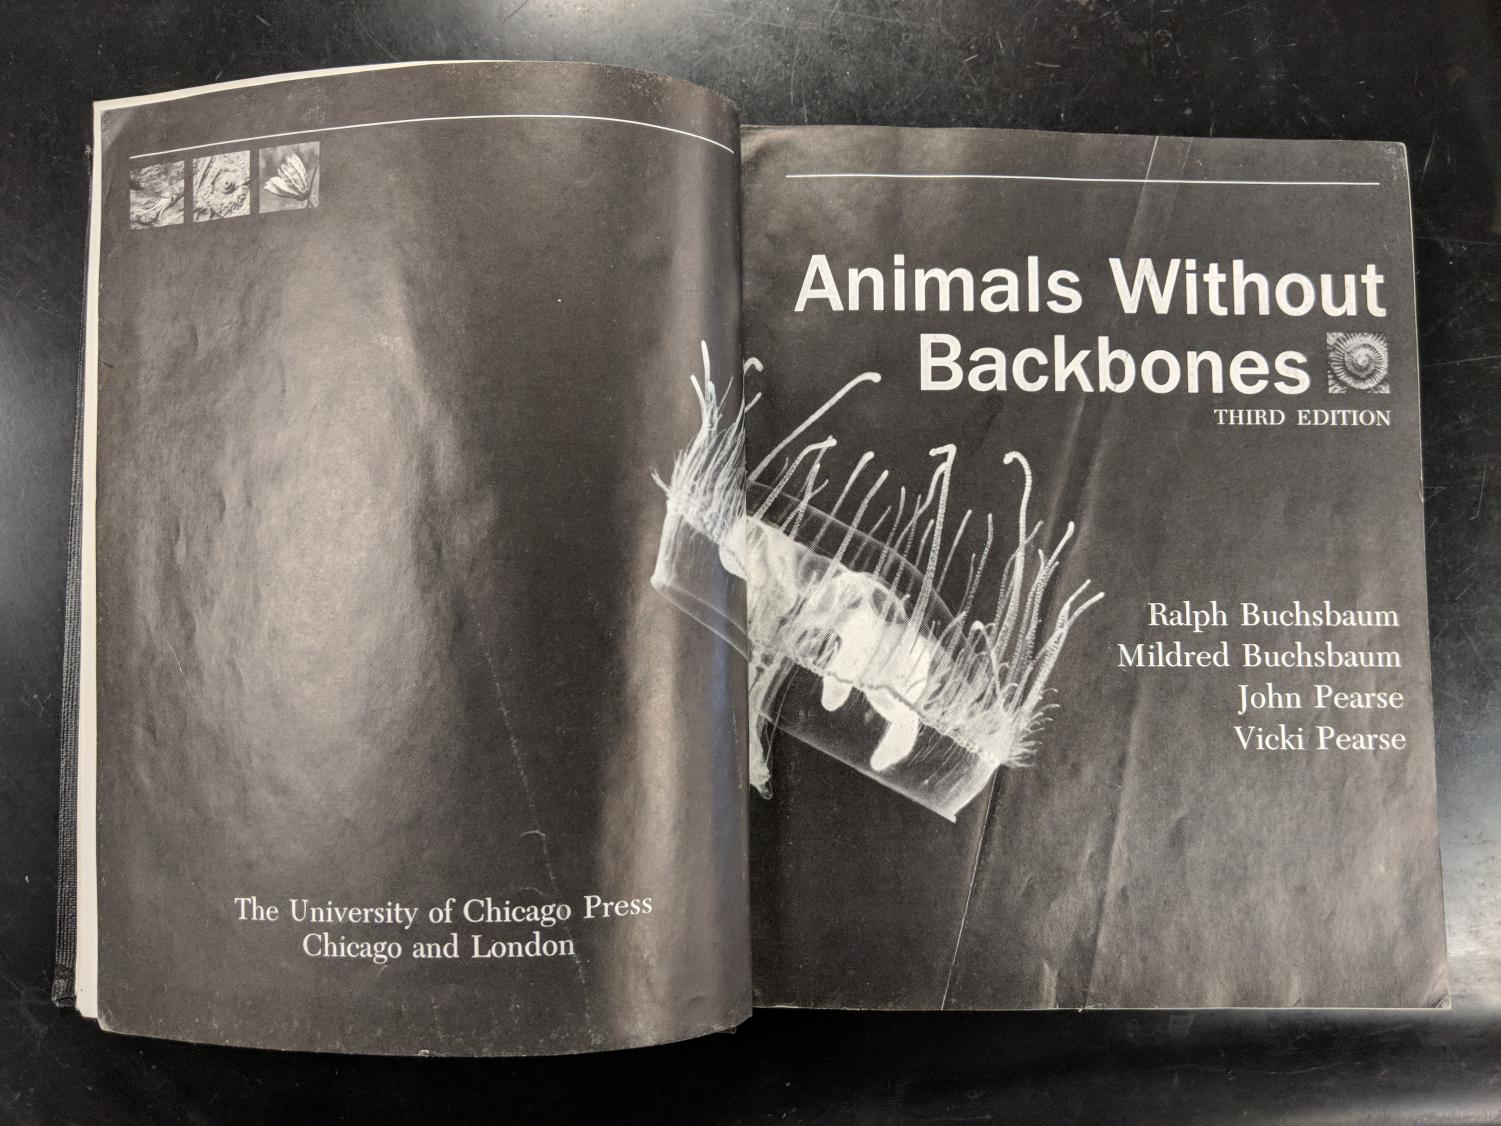 One of many old textbooks that are no longer in use